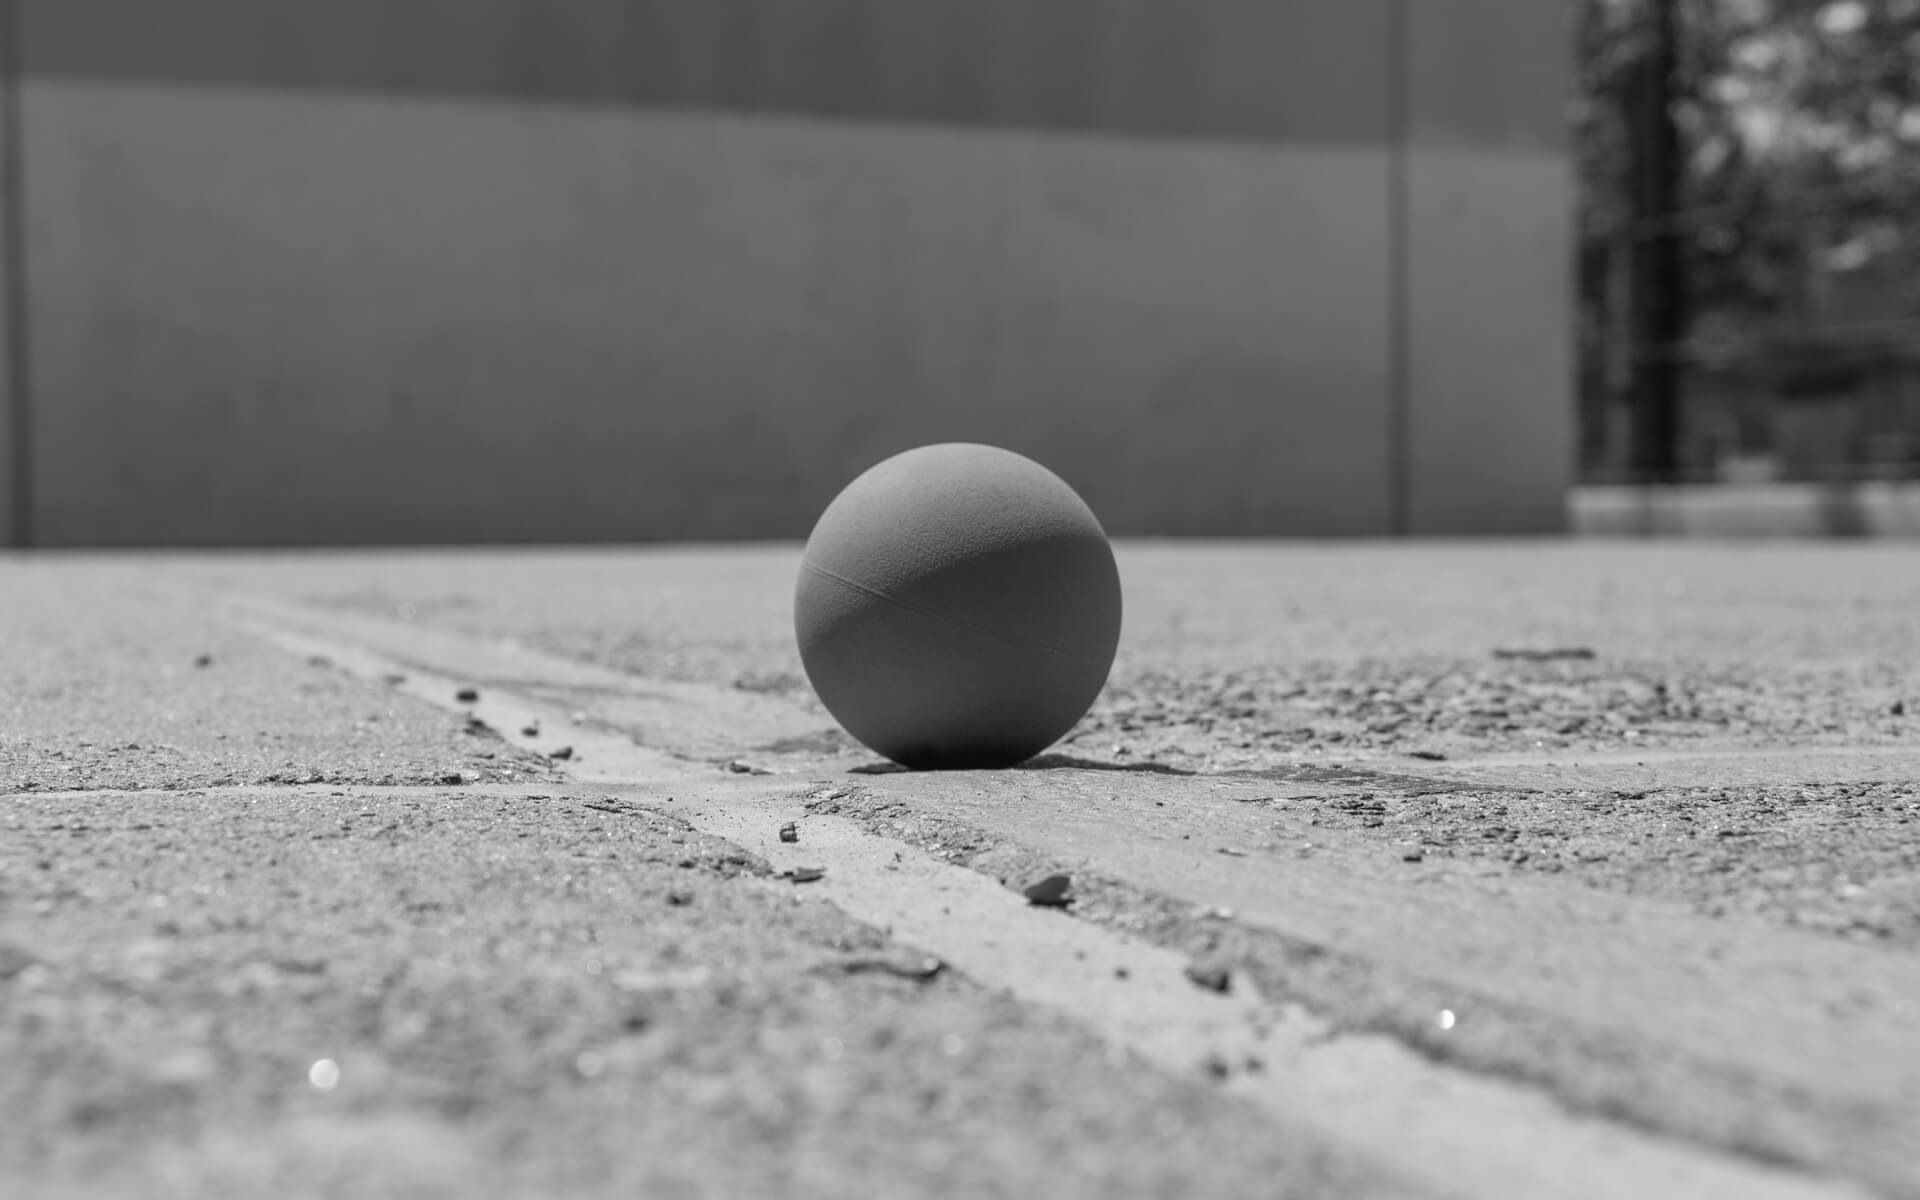 ball no hand bw 1920sm